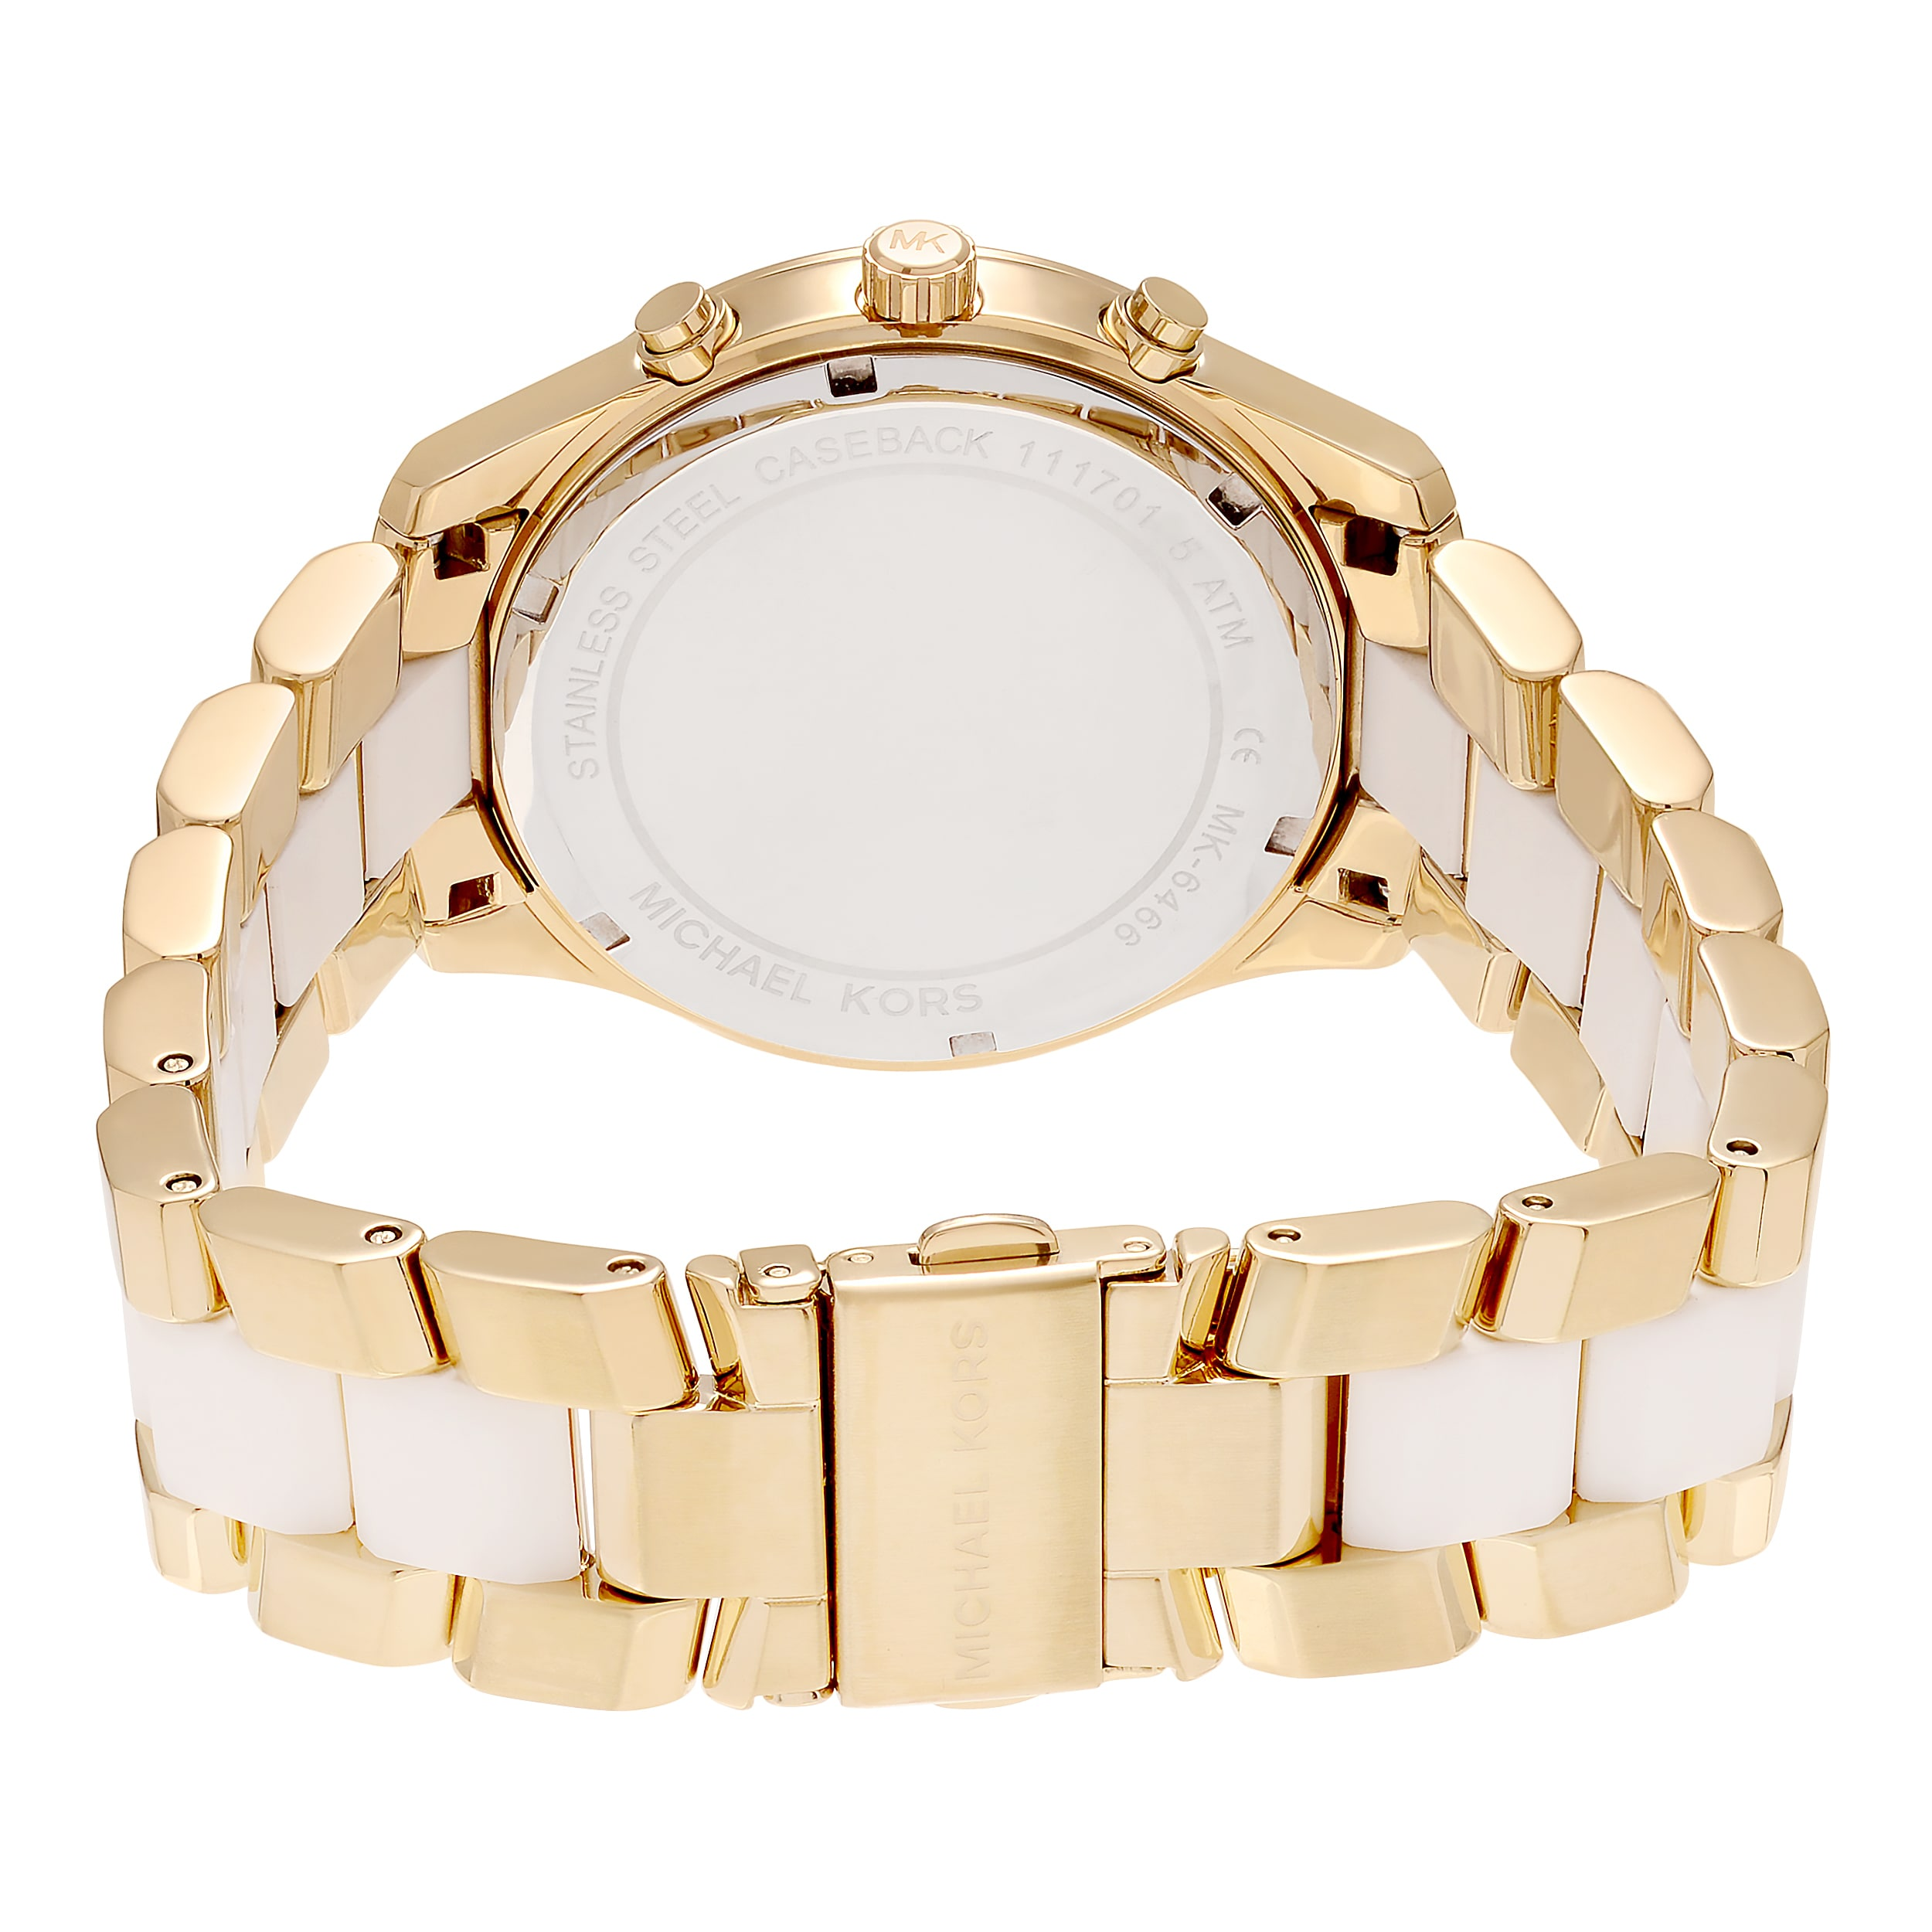 3ec852bca129 Shop Michael Kors Women s MK6466  Briar  Goldtone Stainless Steel  Multifunction Dial Link Bracelet Watch - Free Shipping Today - Overstock -  16306357